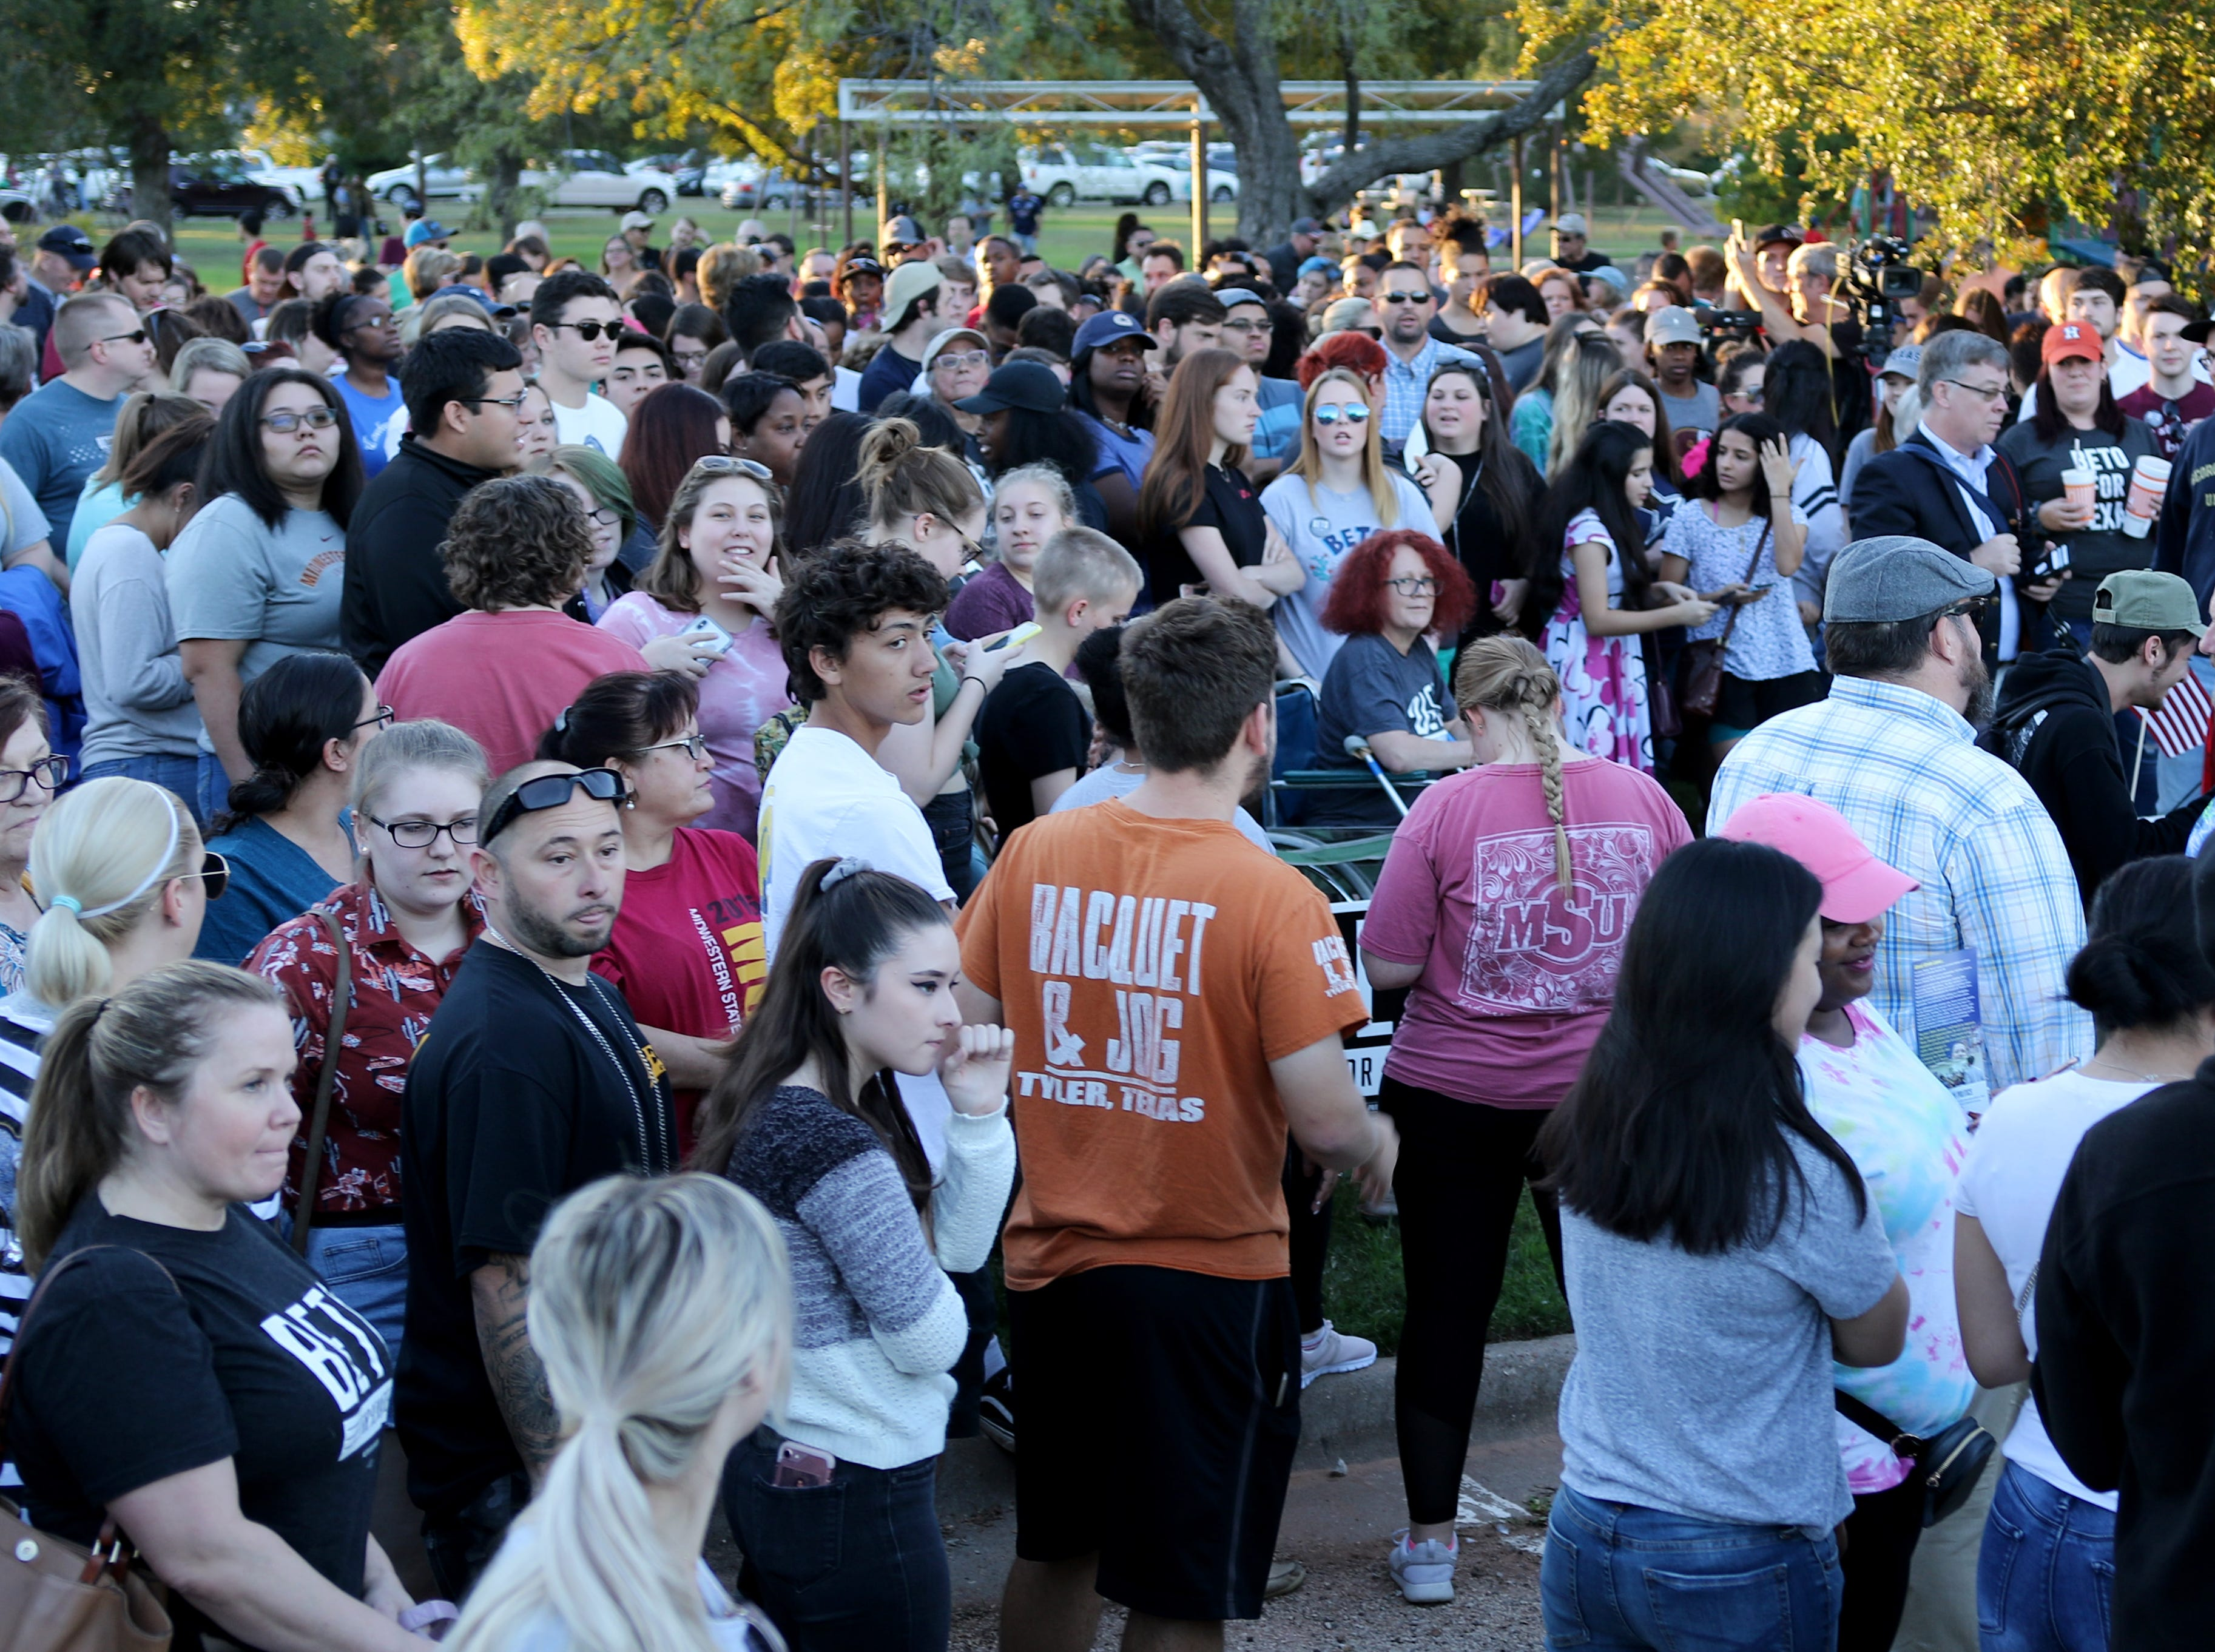 About 400 people wait for Rep. Beto O'Rourke to arrive Monday, Oct. 29, 2018, at Kiwanis Park in Wichita Falls.